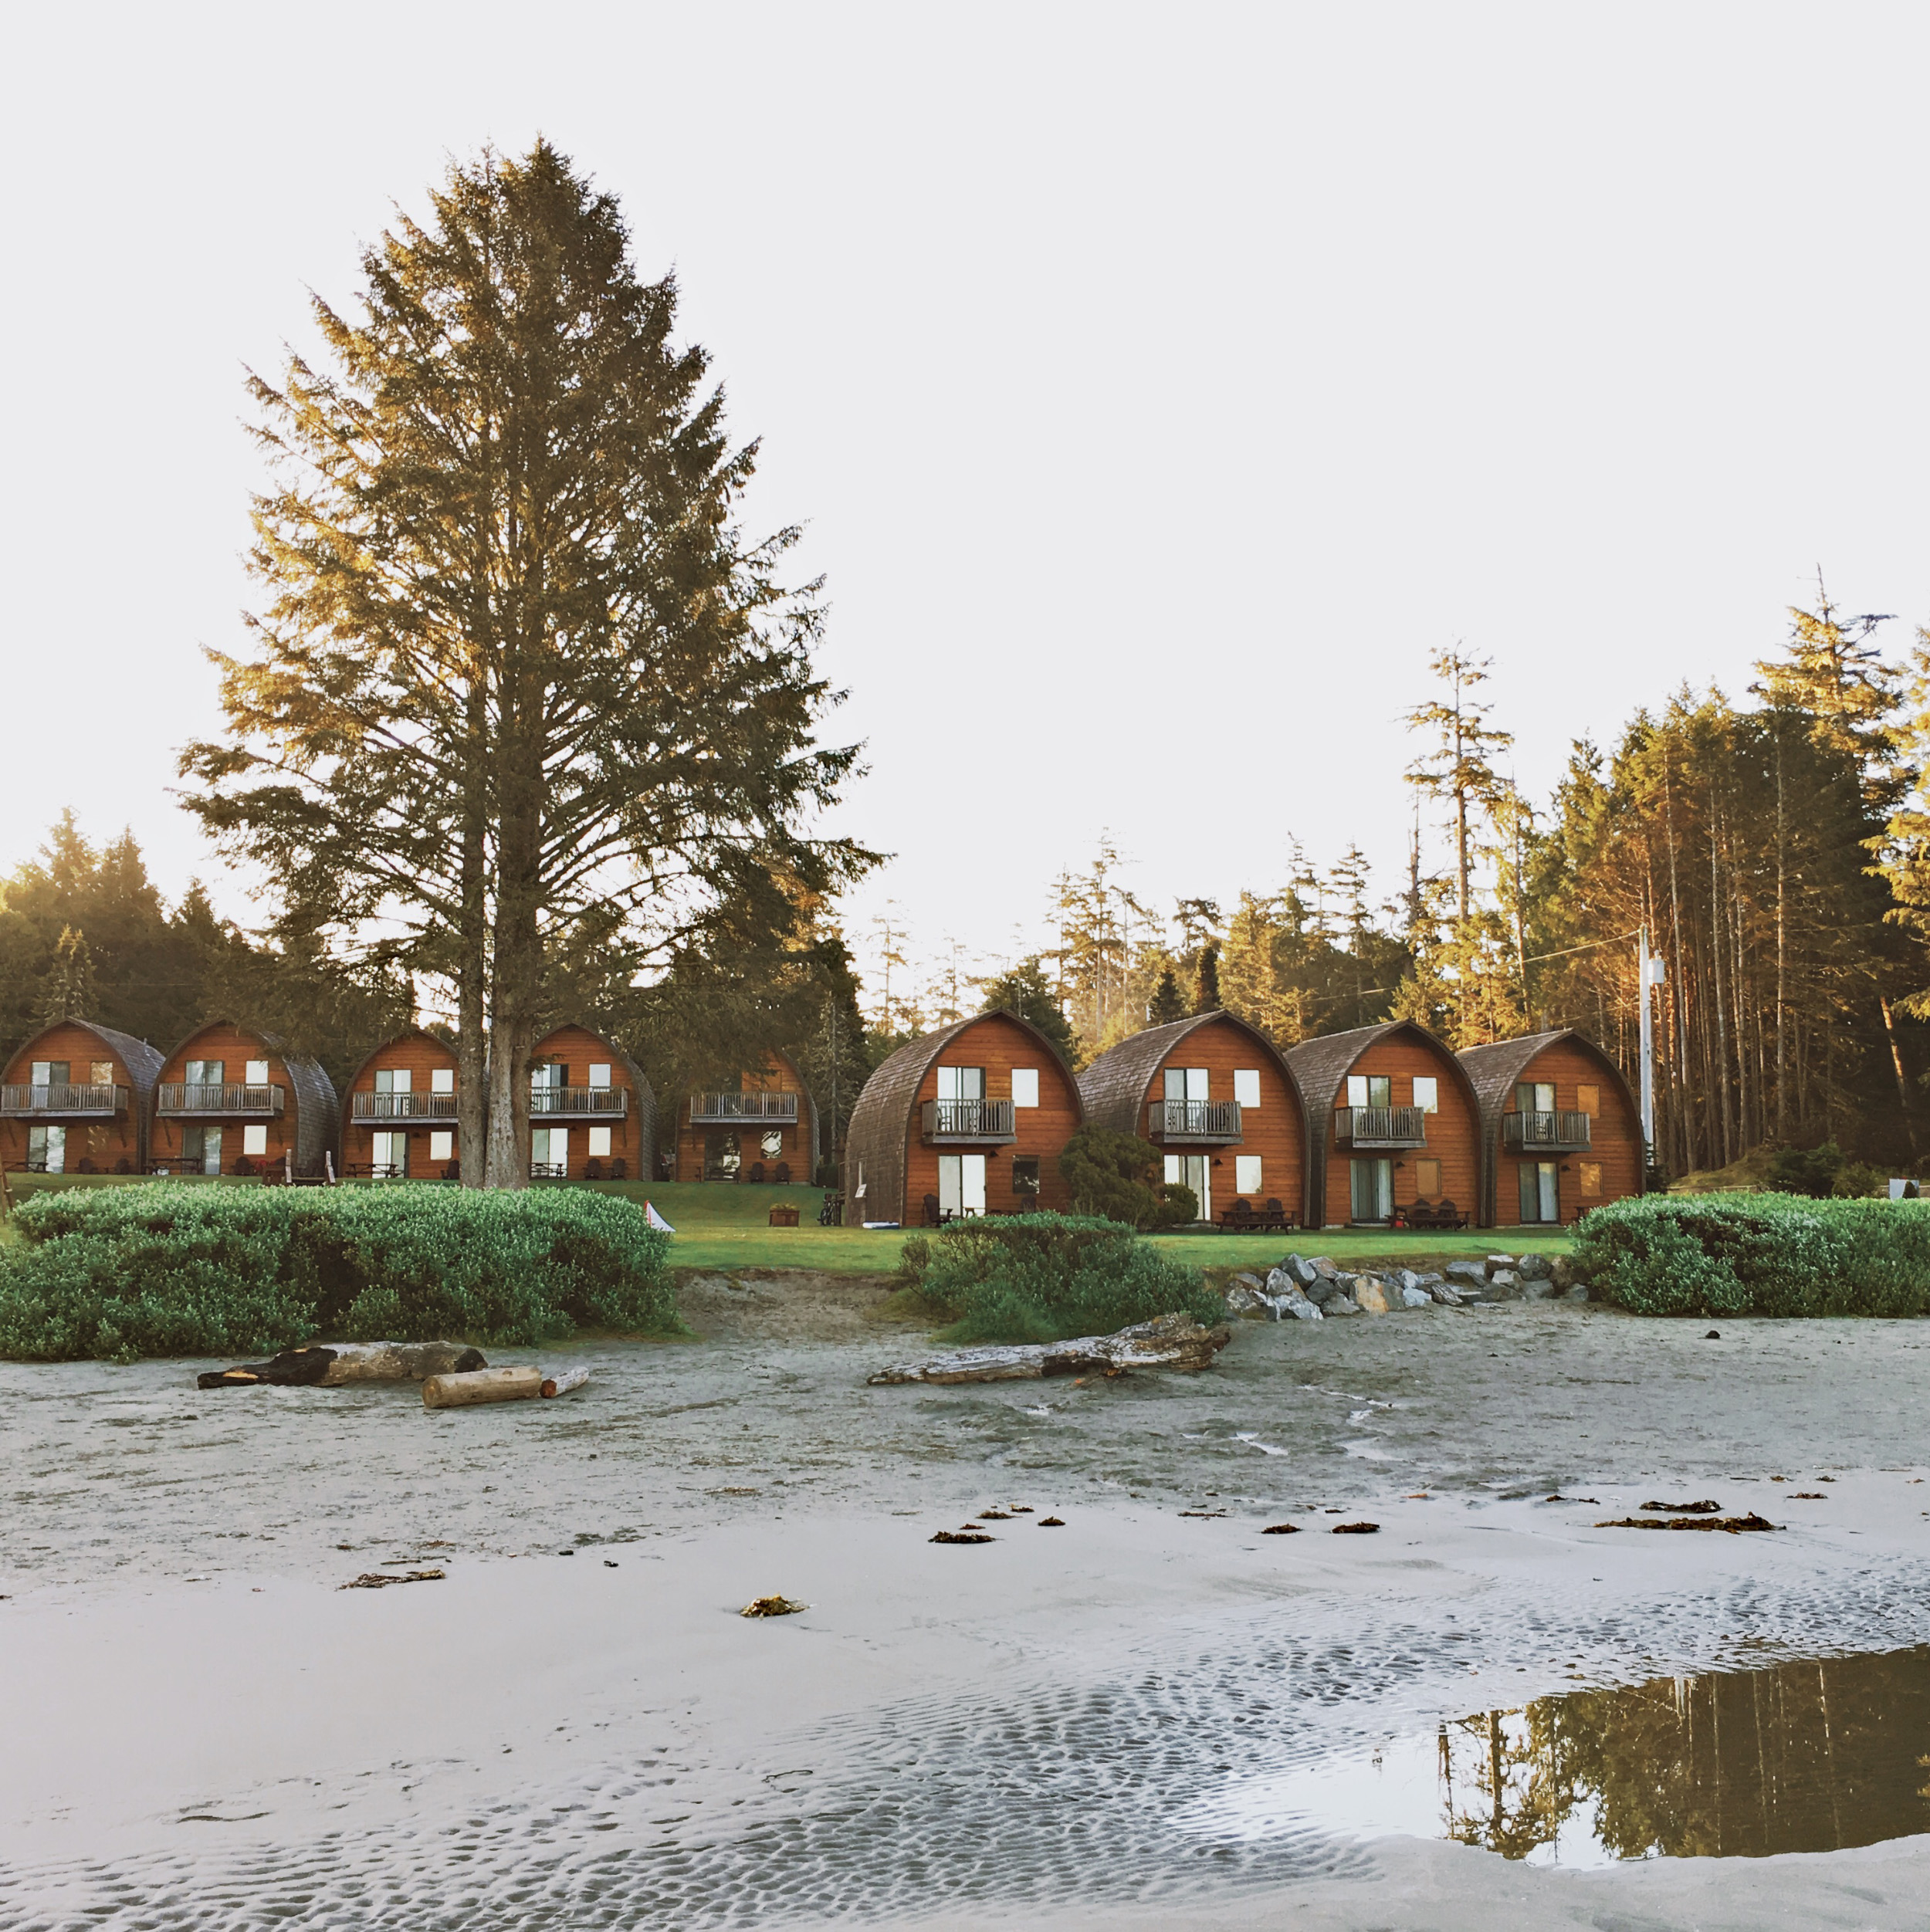 Cute beach front cabins at Ocean Village Resort, Tofino